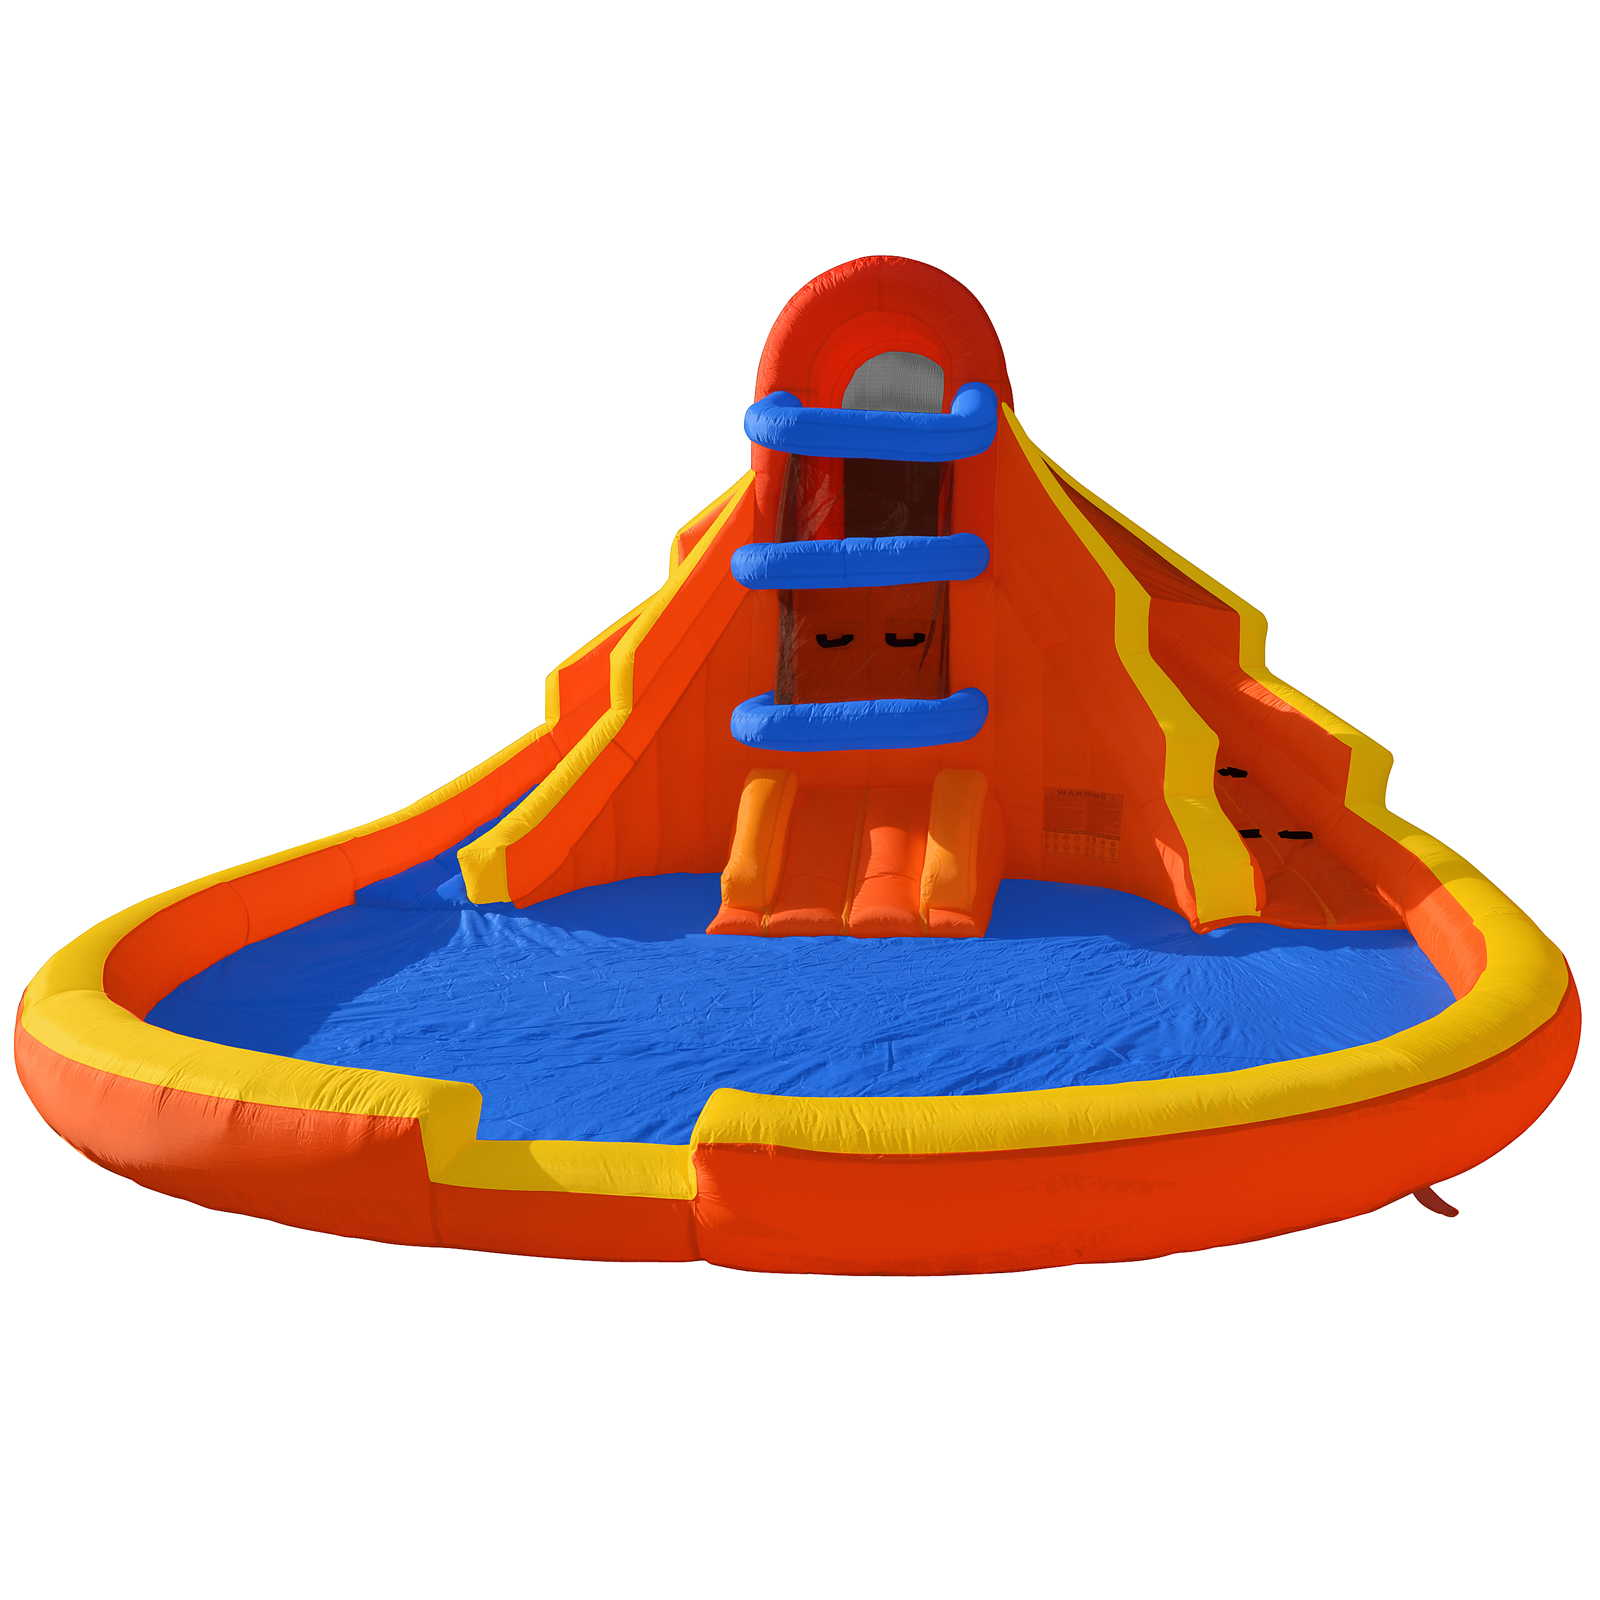 Cloud 9 Climb 'n' Slide - Inflatable Outdoor Double Water Slide and Climbing Wall